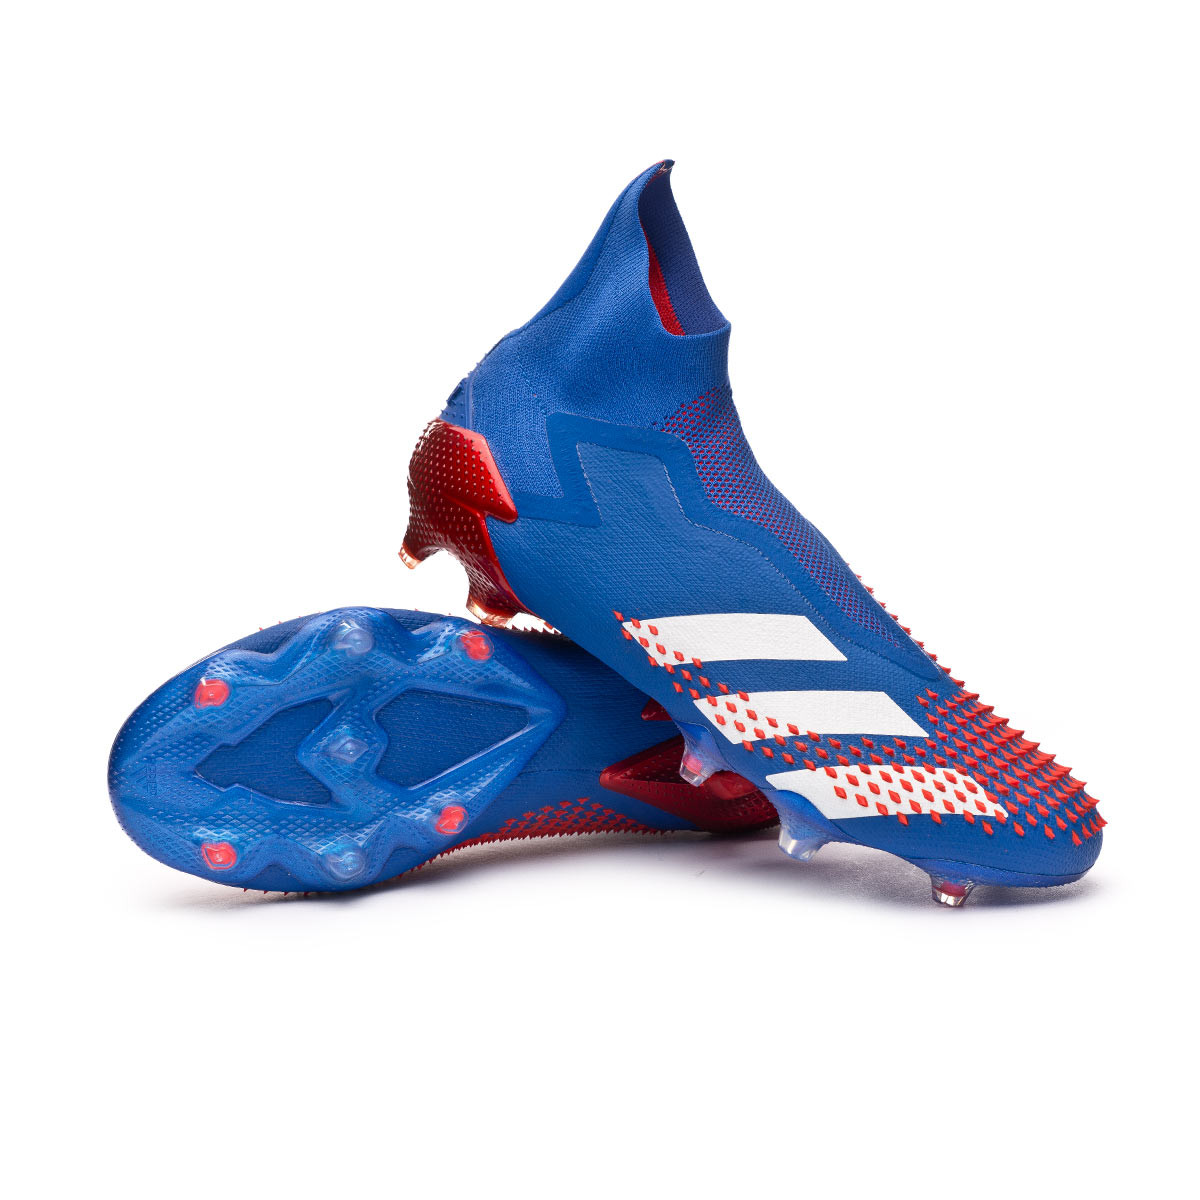 Privación humor antiguo  Football Boots adidas Predator 20+ FG Team royal blue-White-Active red -  Football store Fútbol Emotion